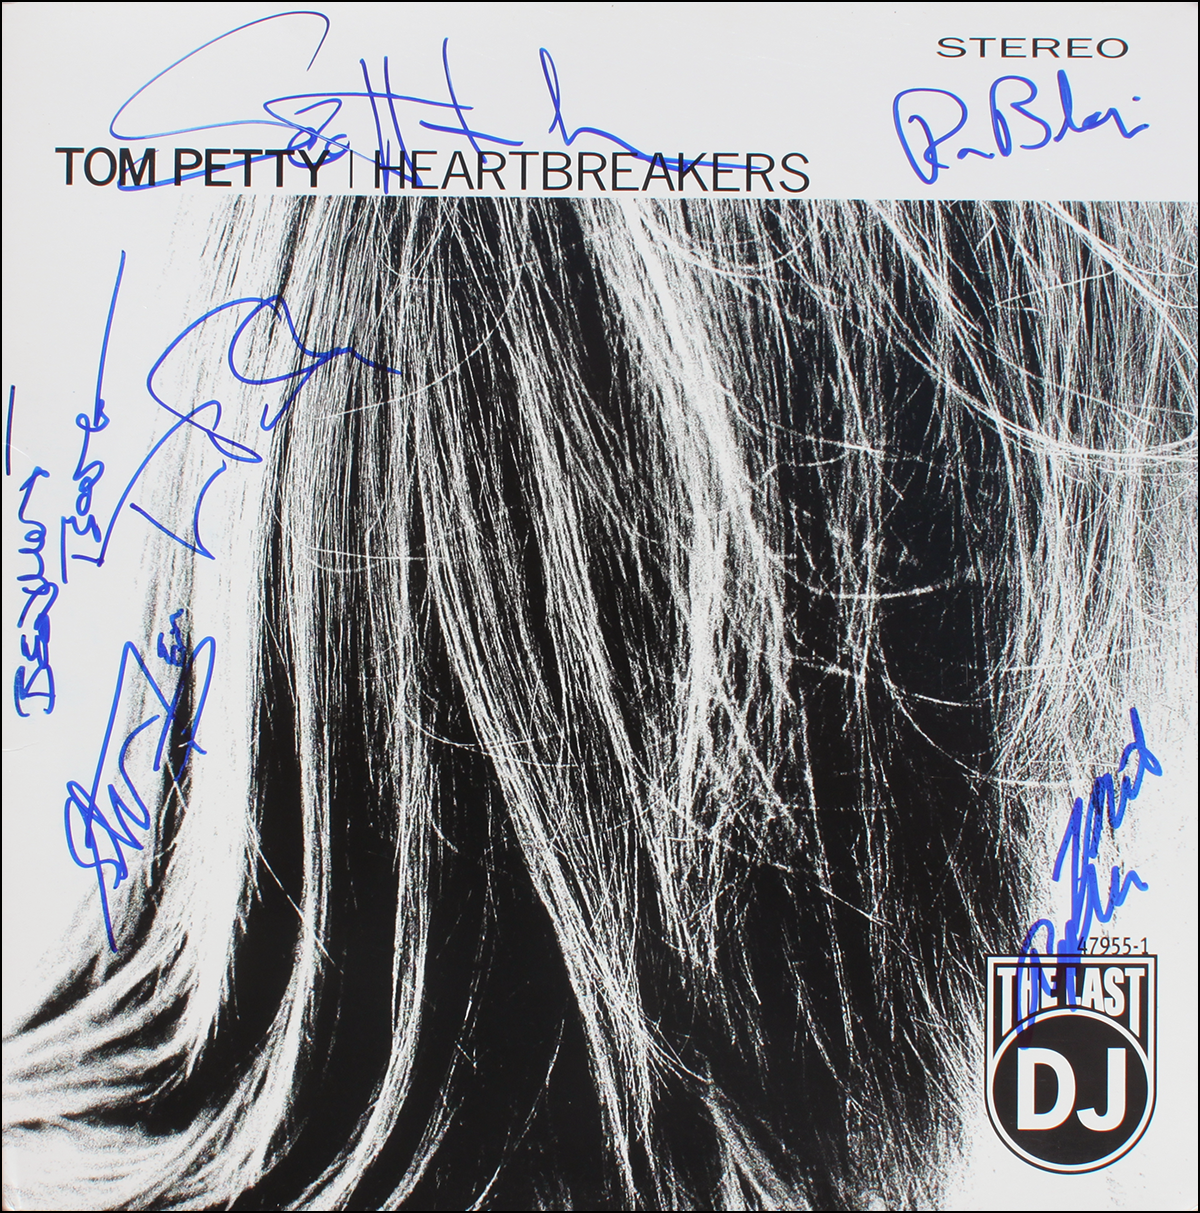 Tom Petty and the Heartrbreakers - LP #2